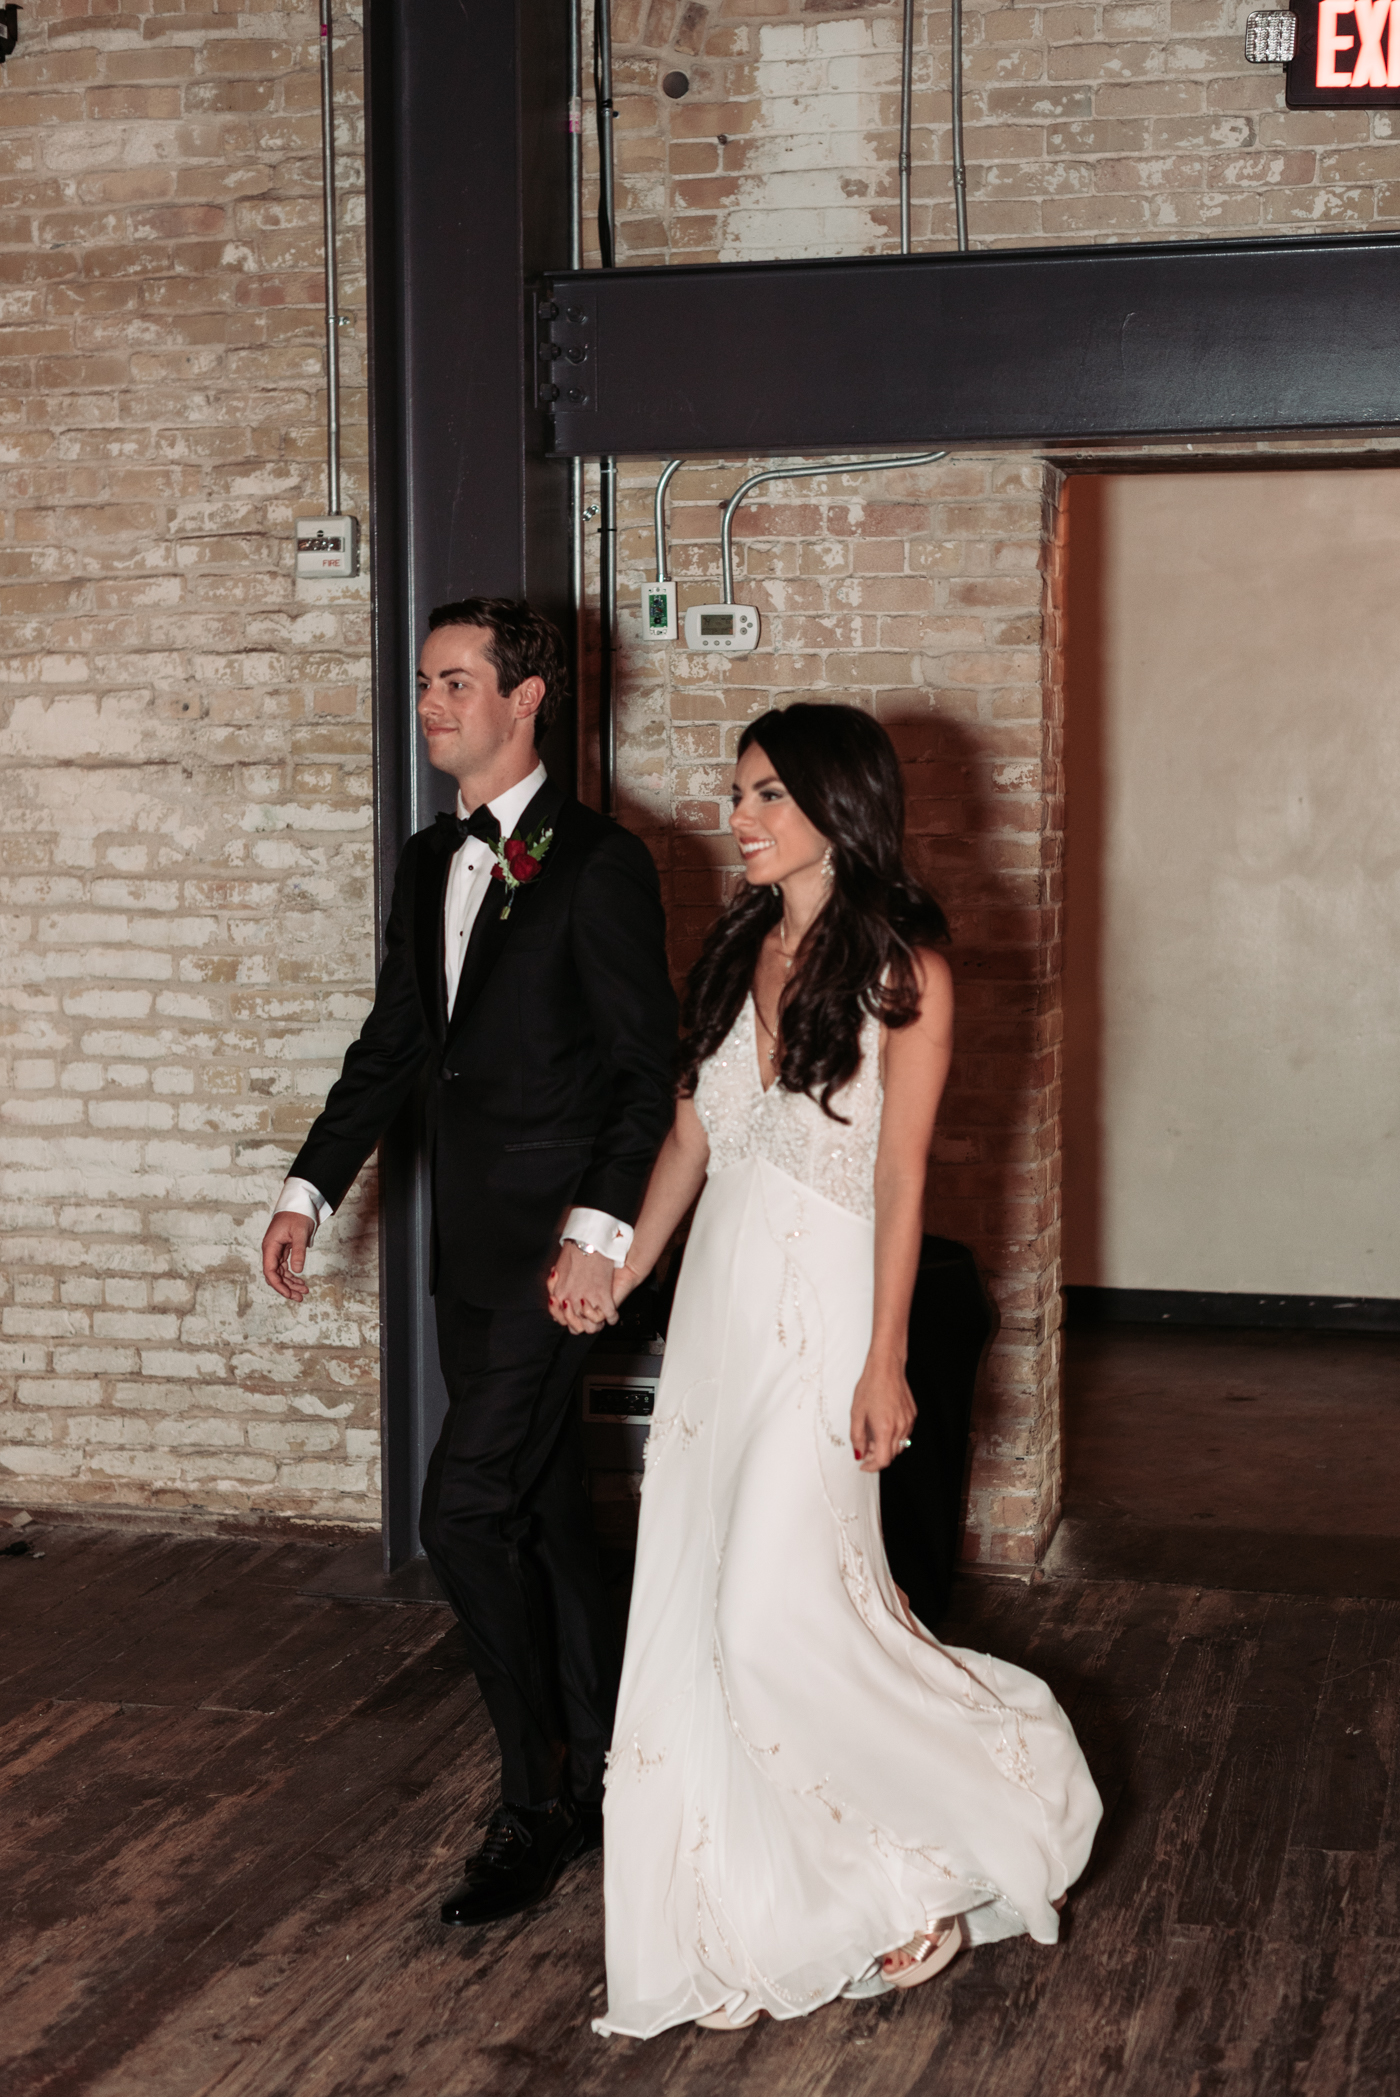 austin.wedding.bbp (94 of 125).jpg